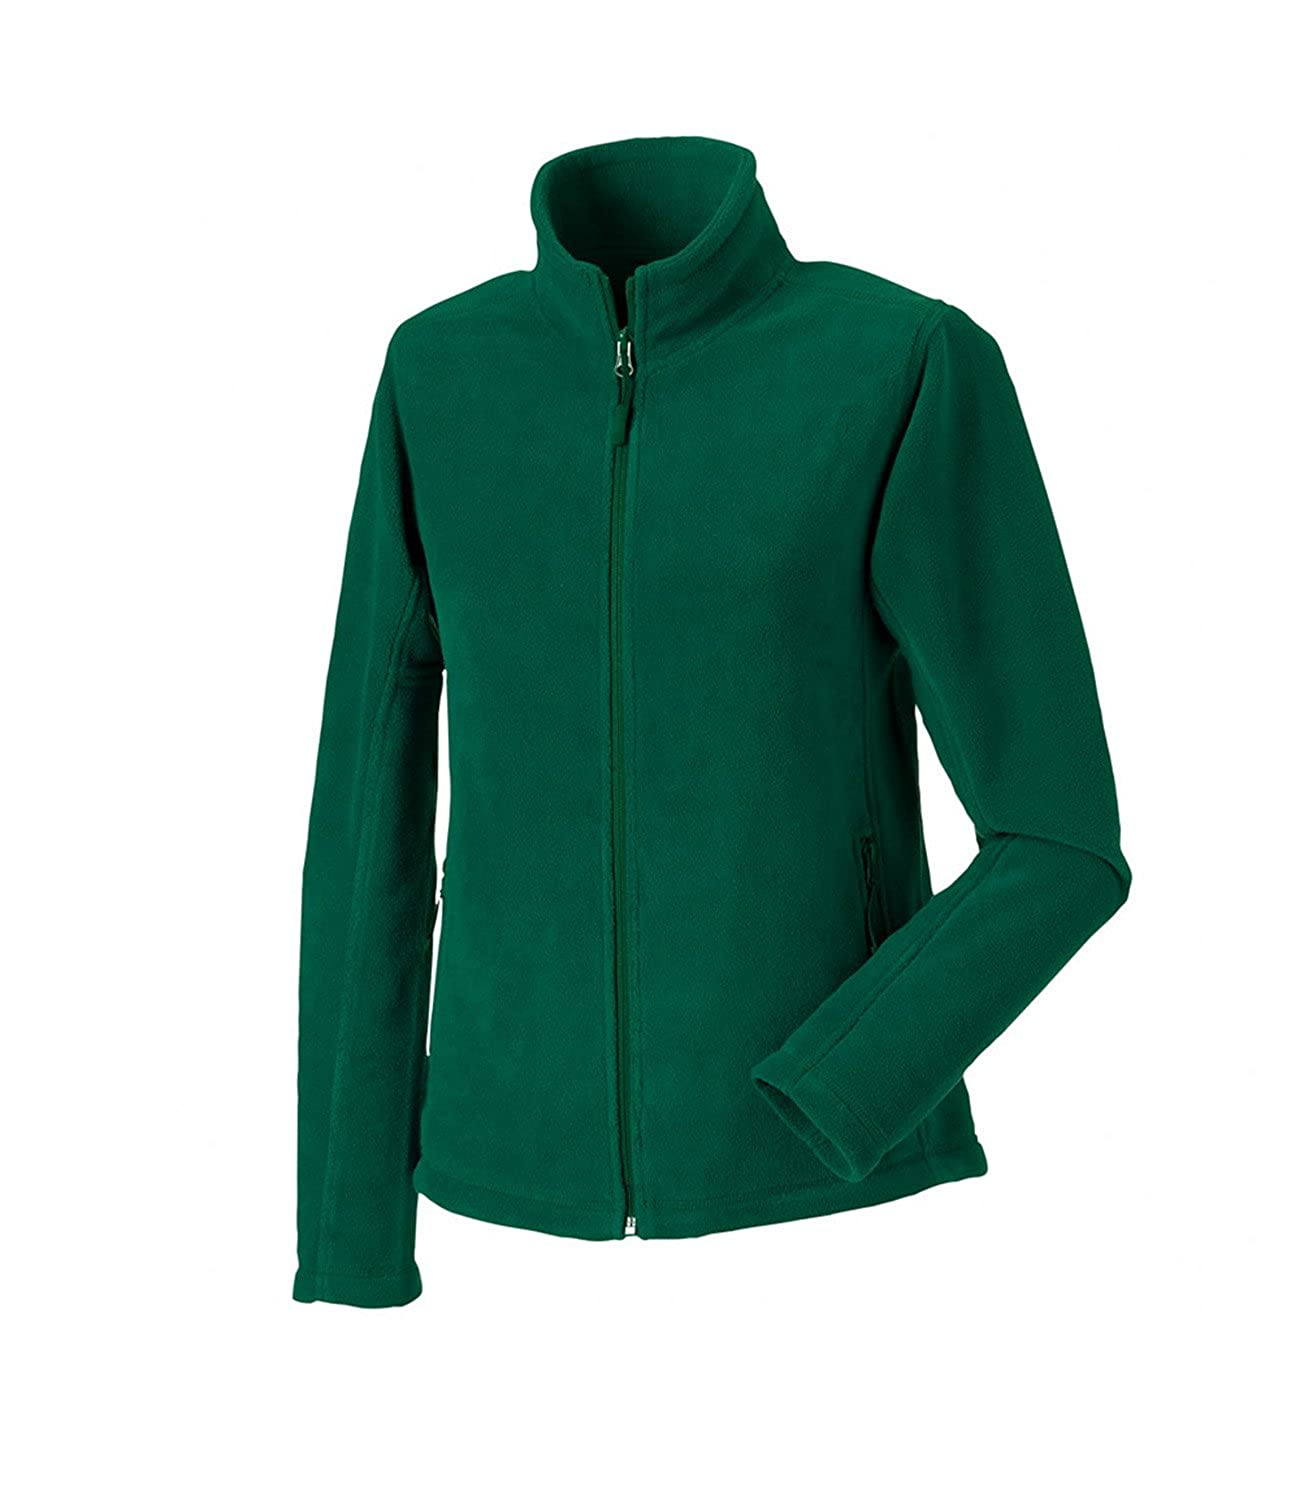 Russell Womens Outdoor Fleece Jacket